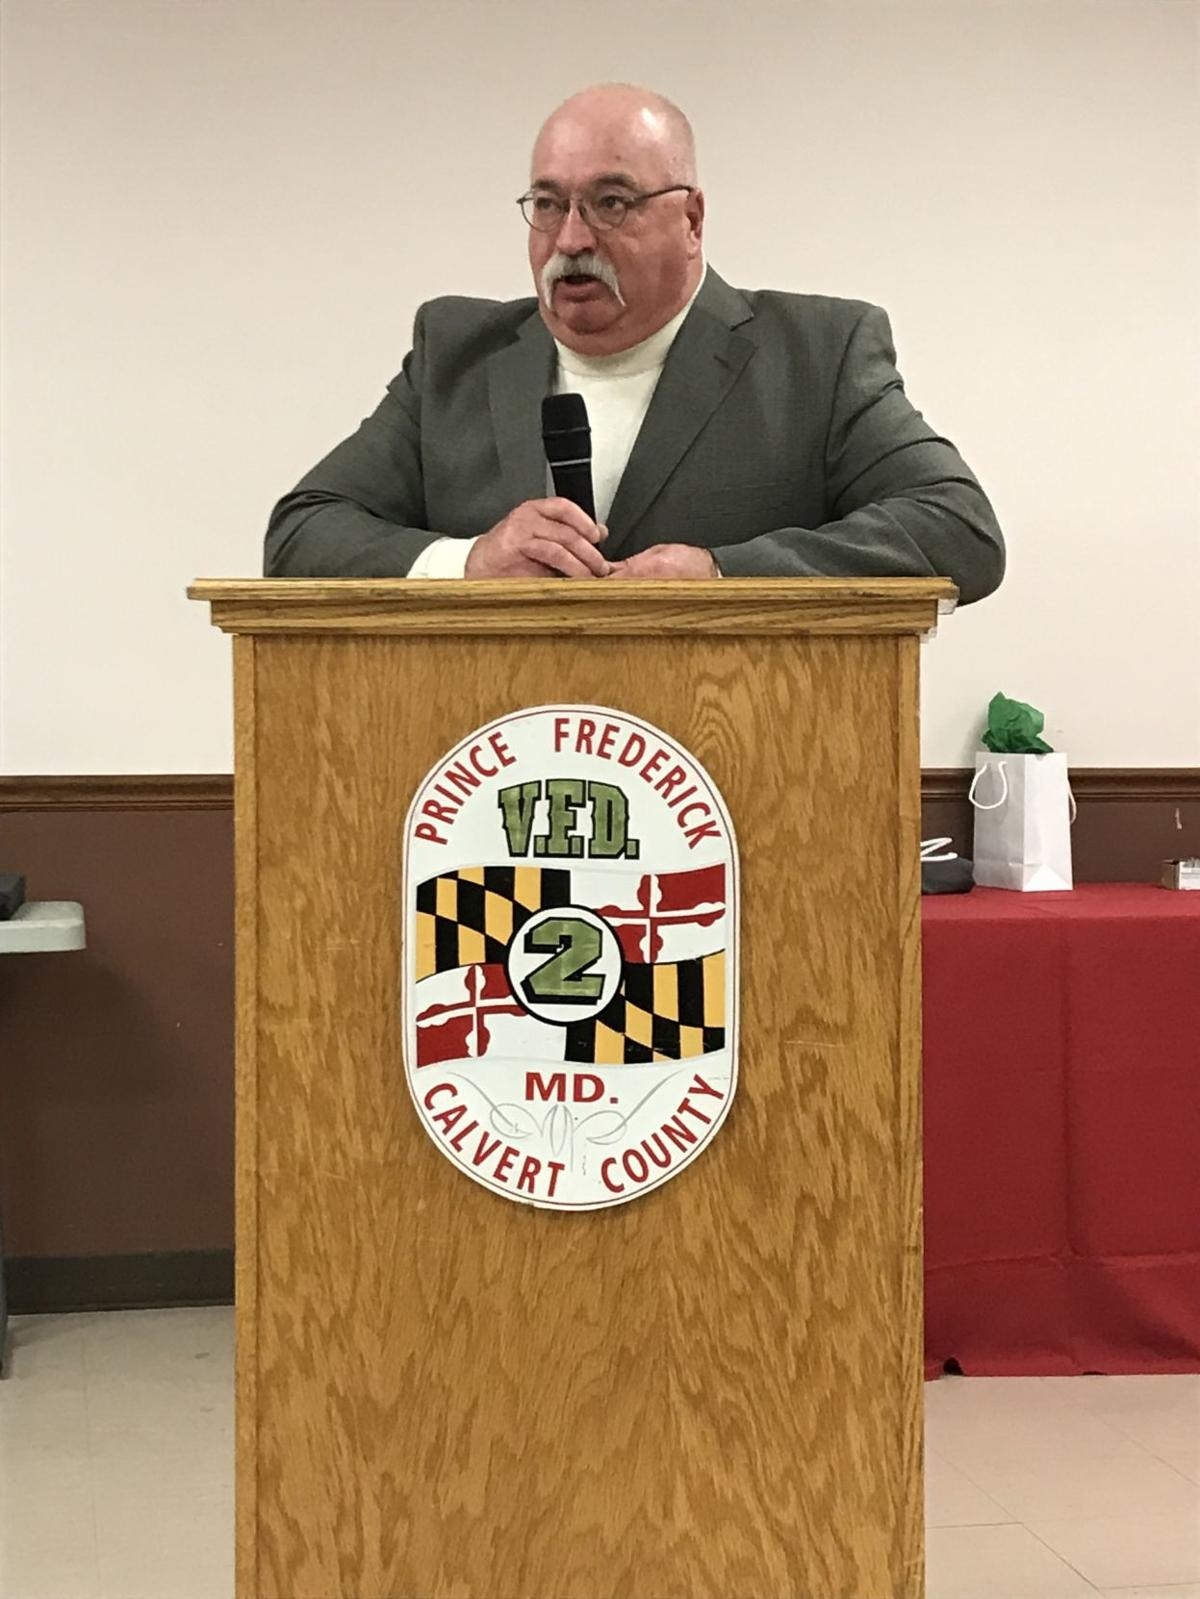 Prince Frederick VFD hosts annual awards banquet ...